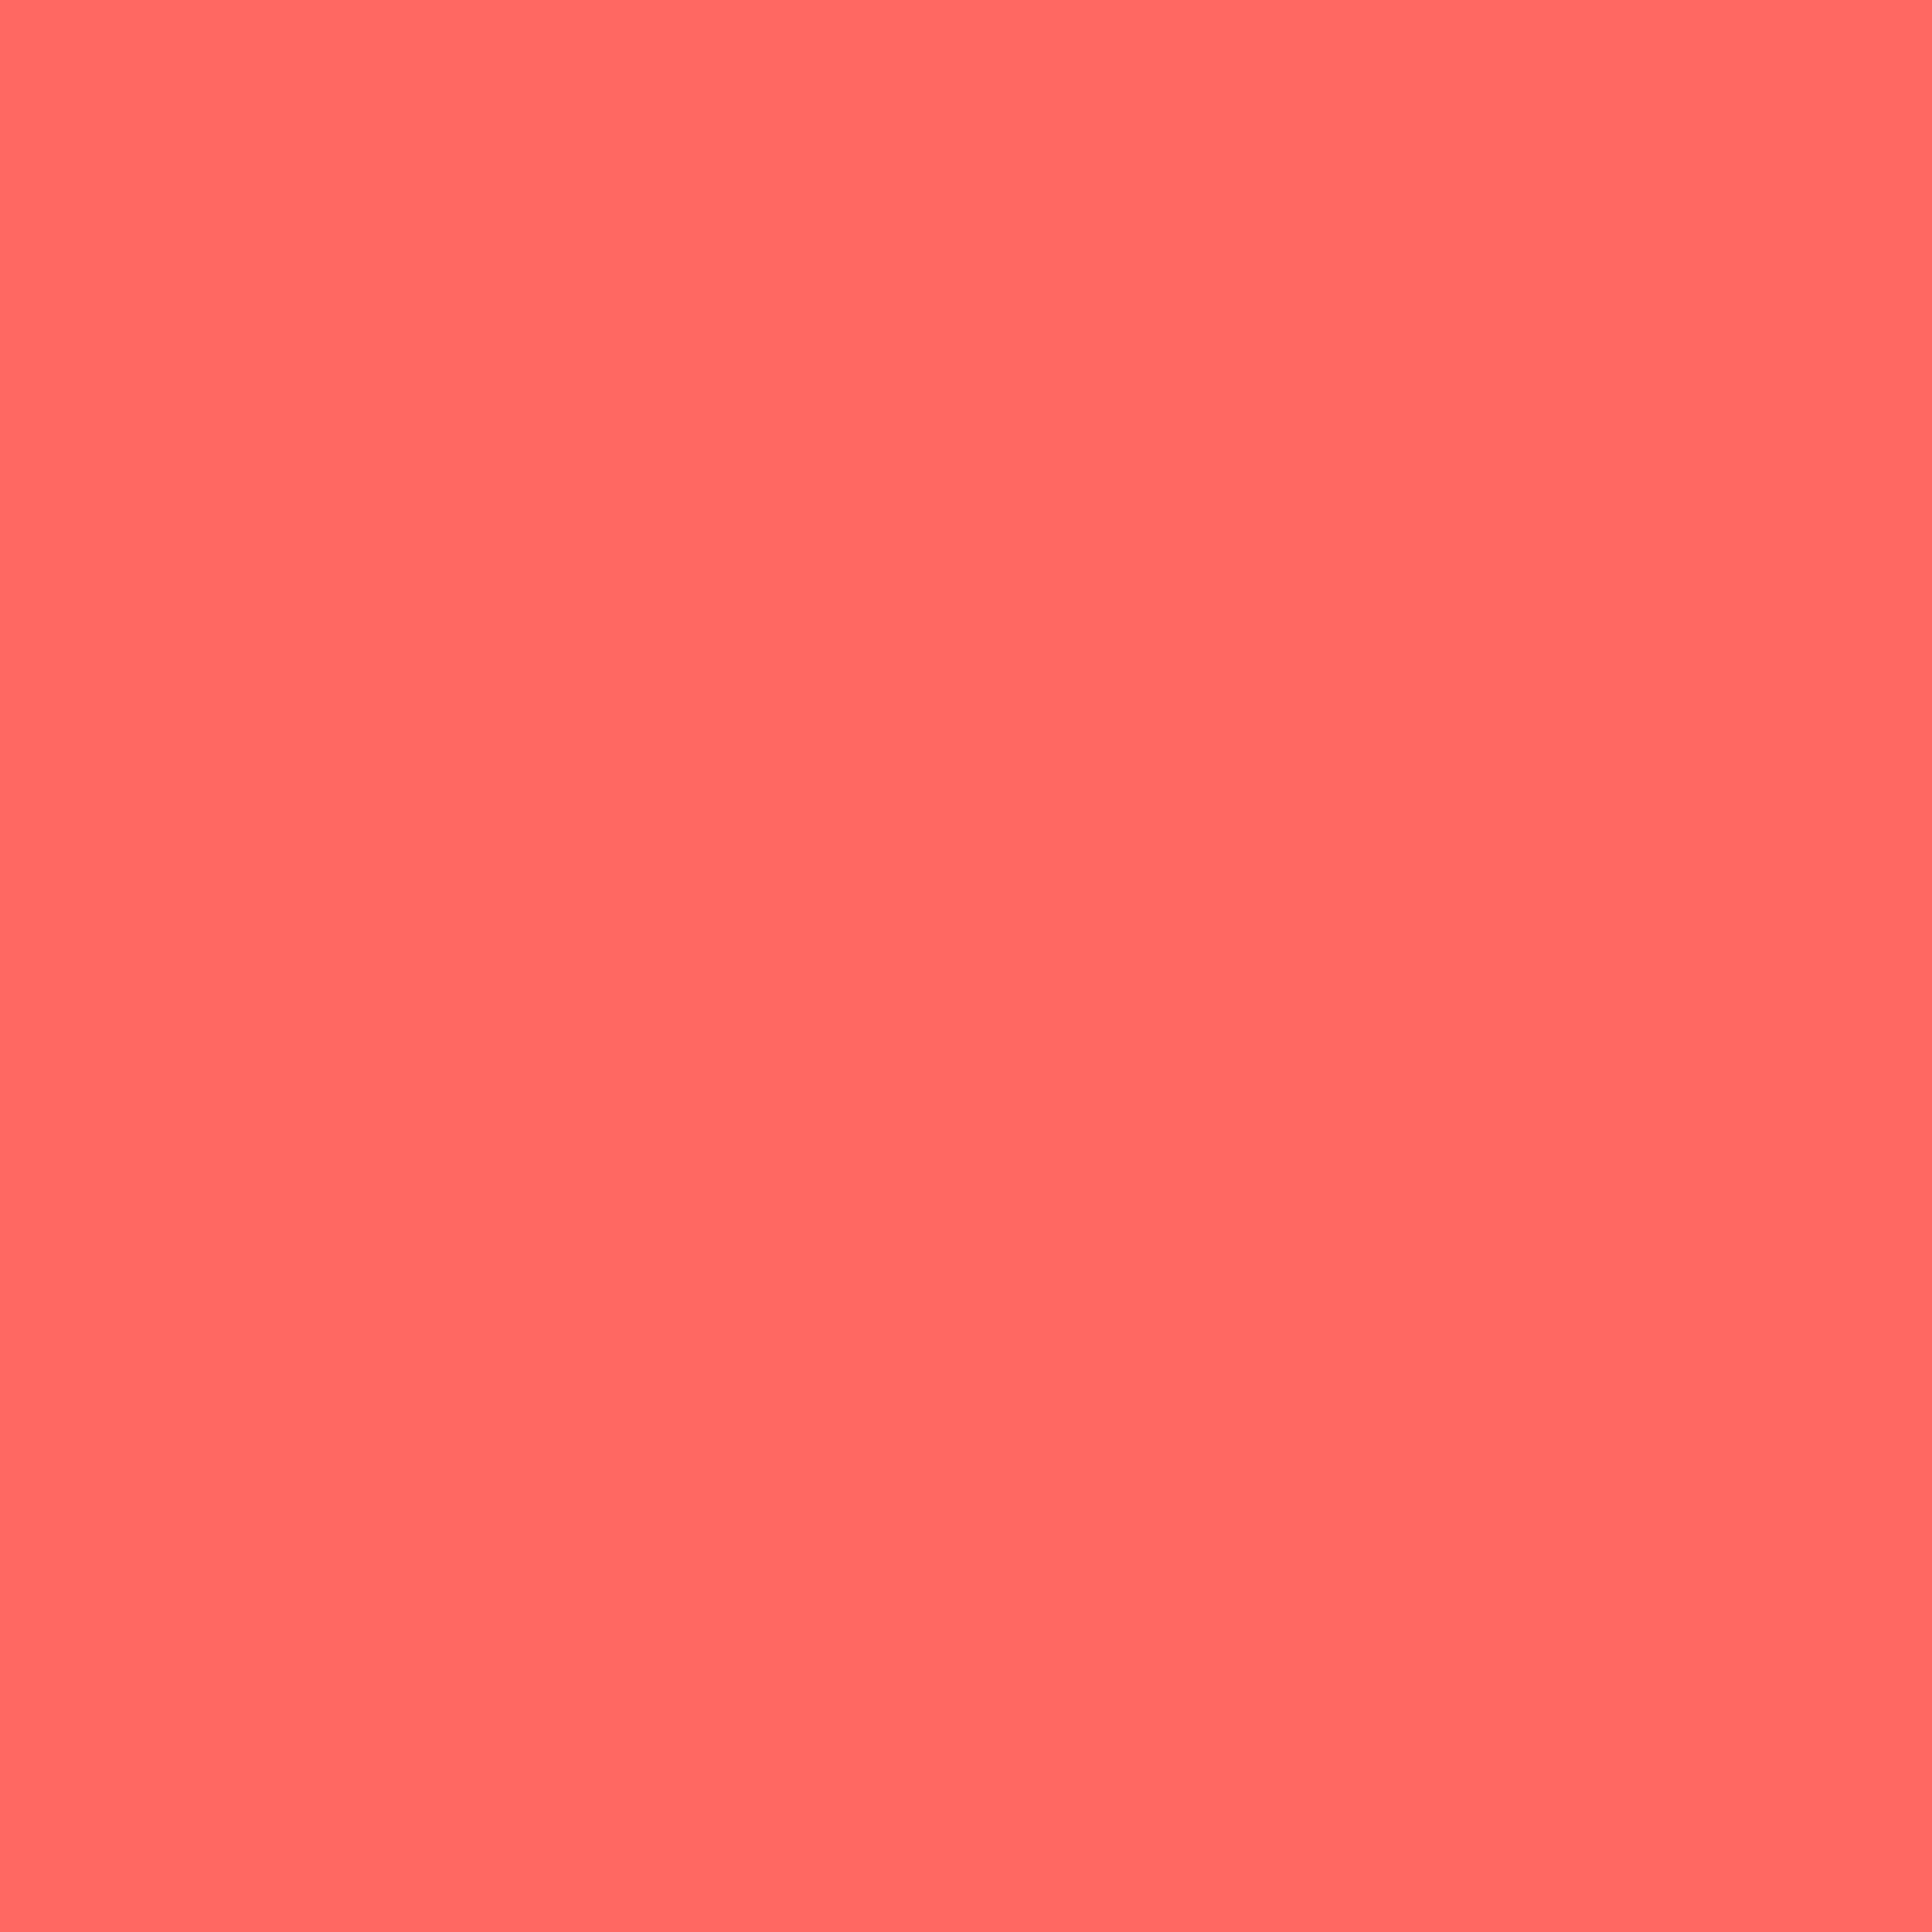 3600x3600 Pastel Red Solid Color Background